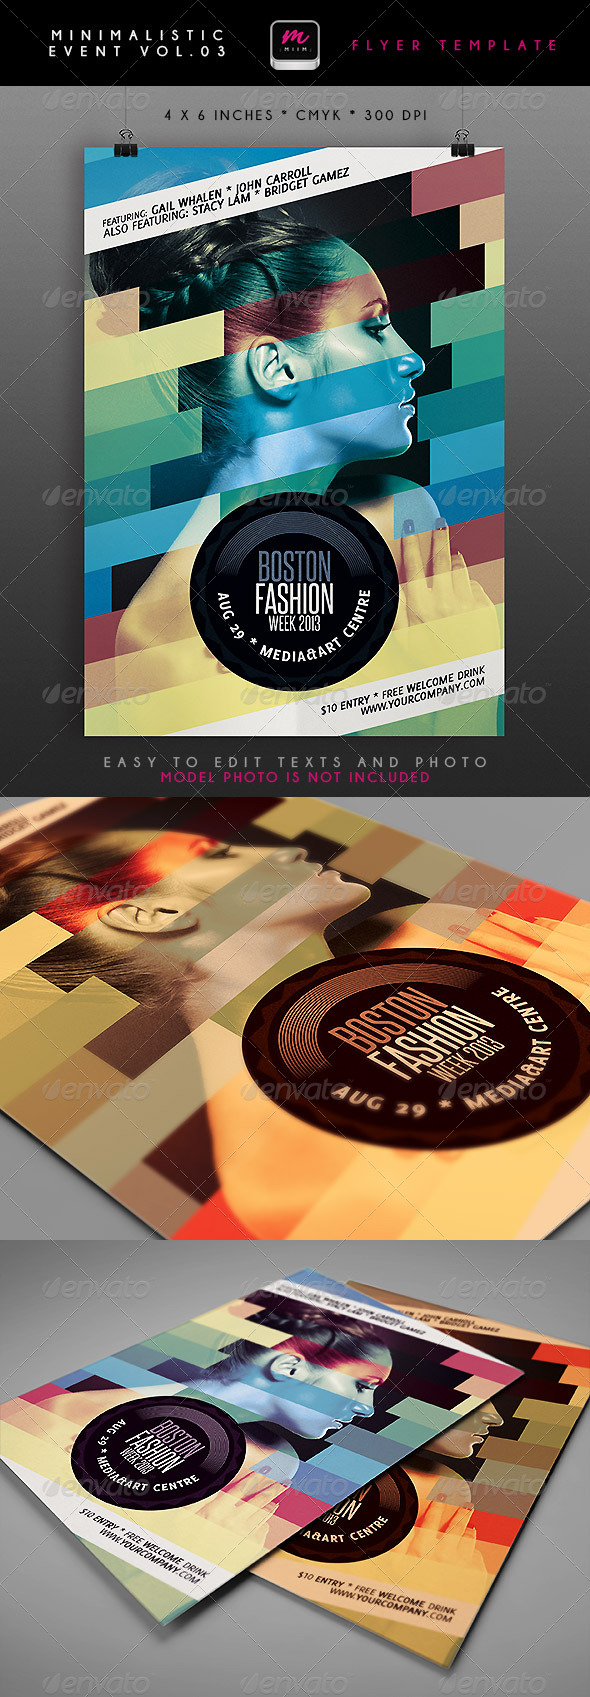 GraphicRiver Minimalistic Event Flyer 3 4746047